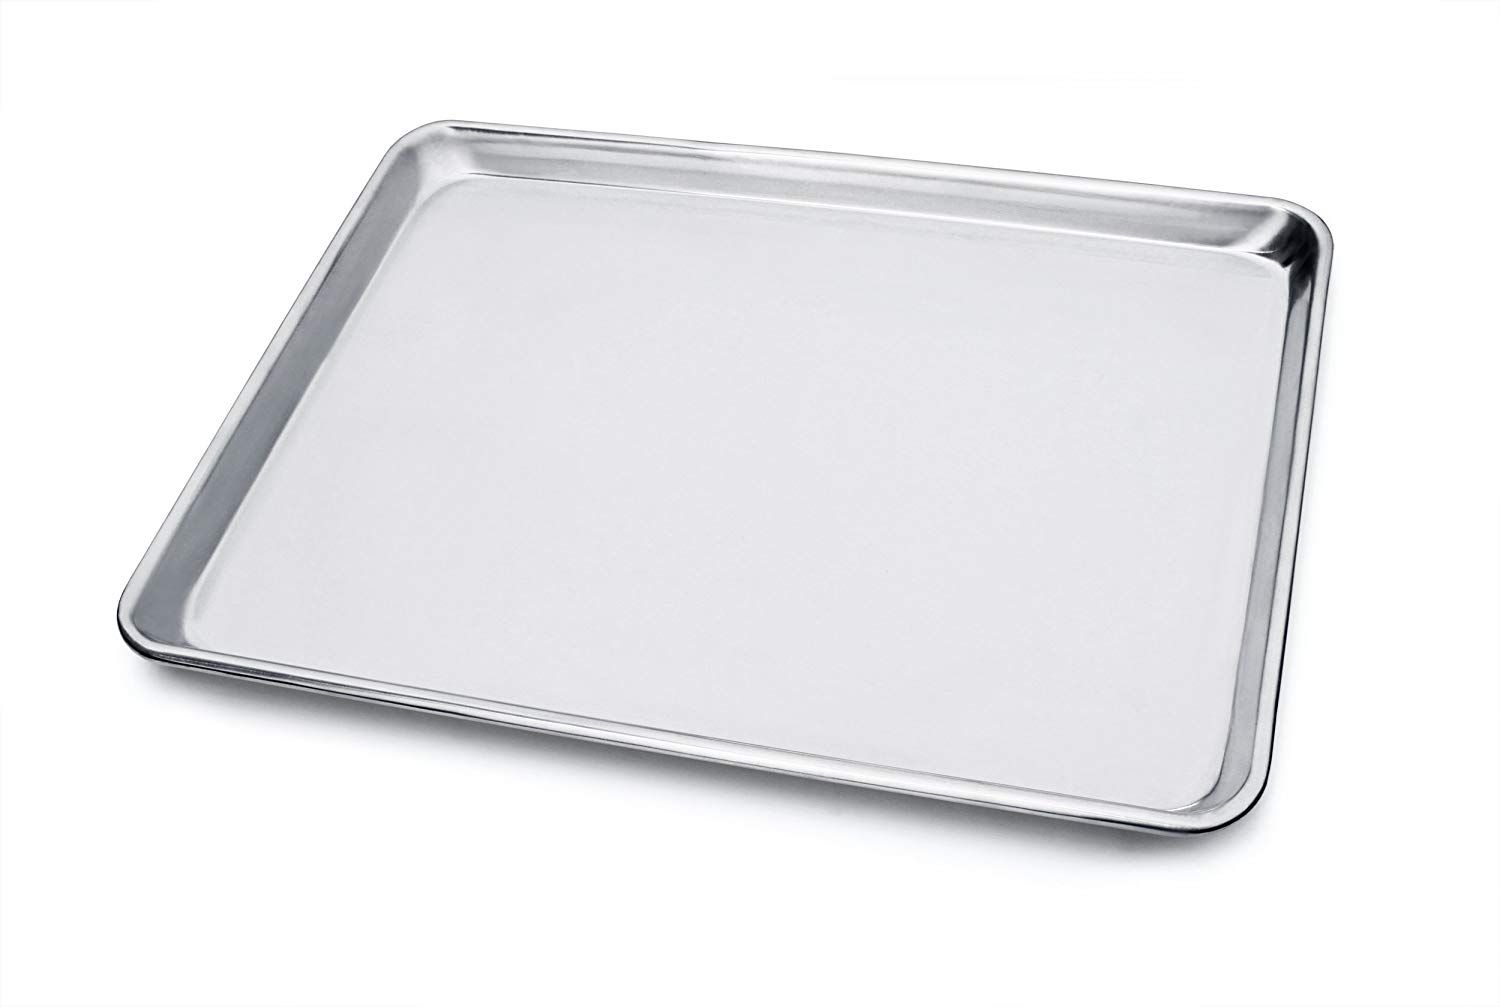 New Star Foodservice 36862 Commercial 18 Gauge Aluminum Sheet Pan 13 X 18 X 1 Inch Half Size See This Great Product This Bakers Casseroles In 2019